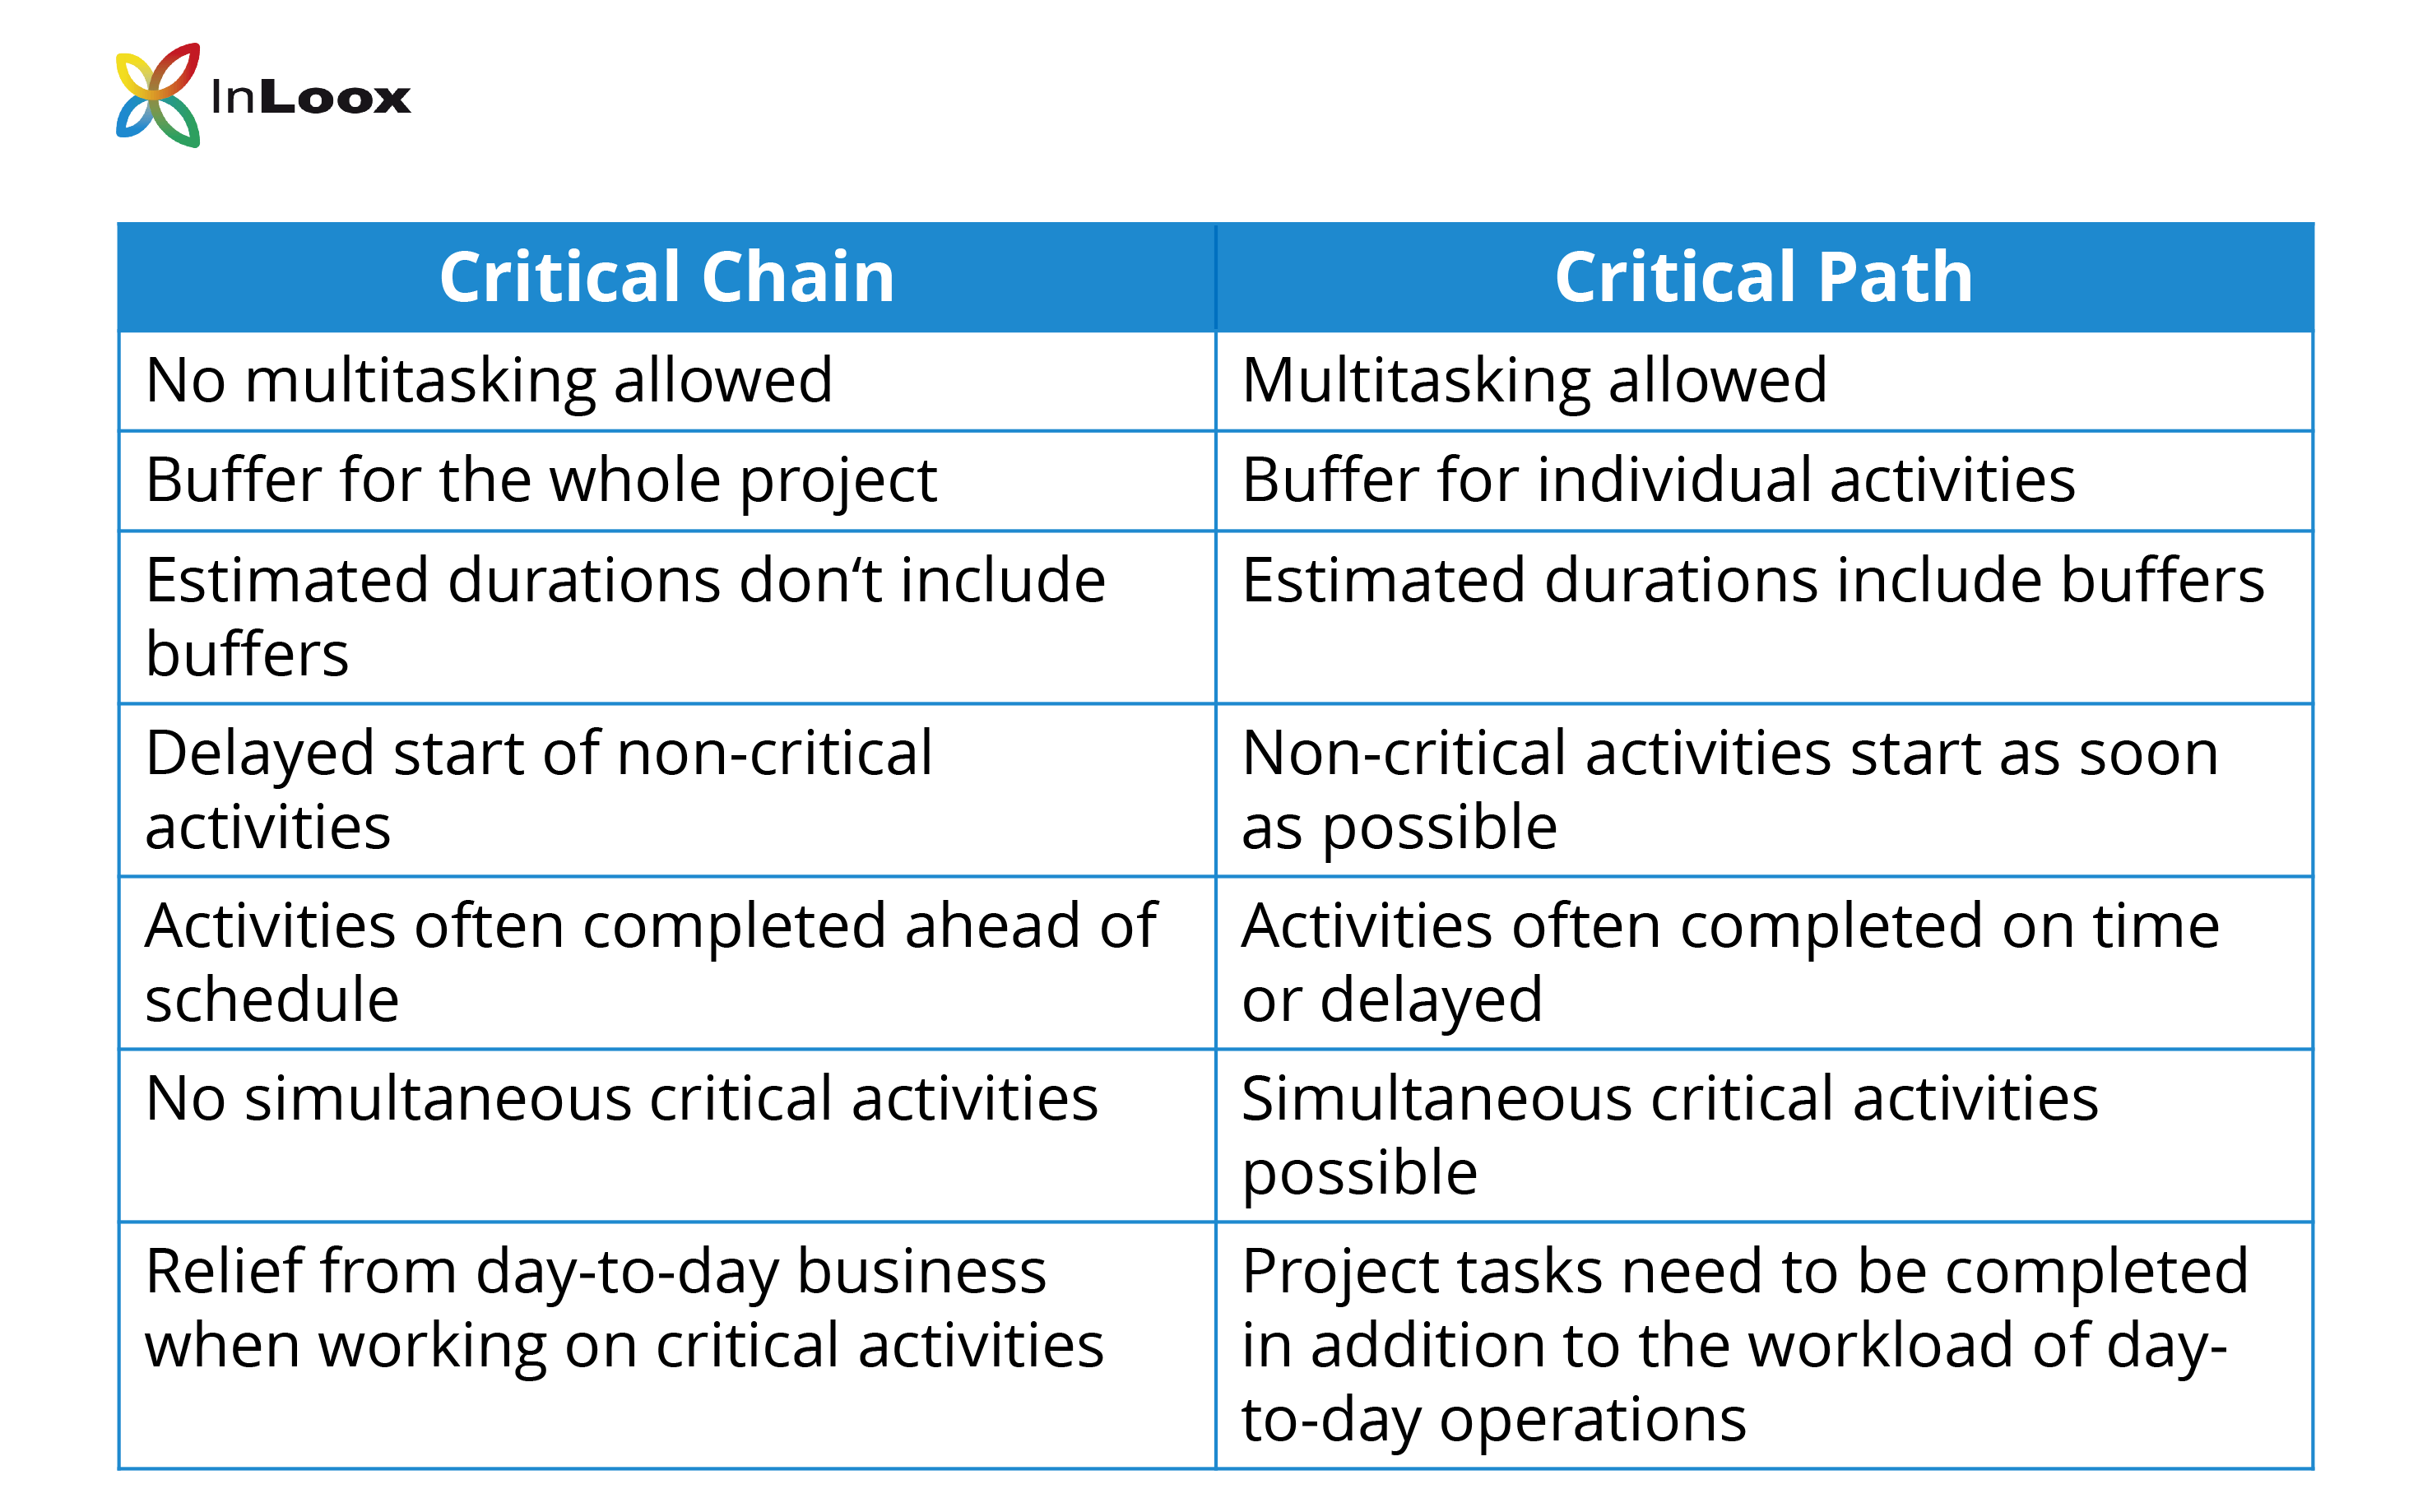 Comparison Table: The differences between Critical Chain and Critical Path - How the two project management methods differ